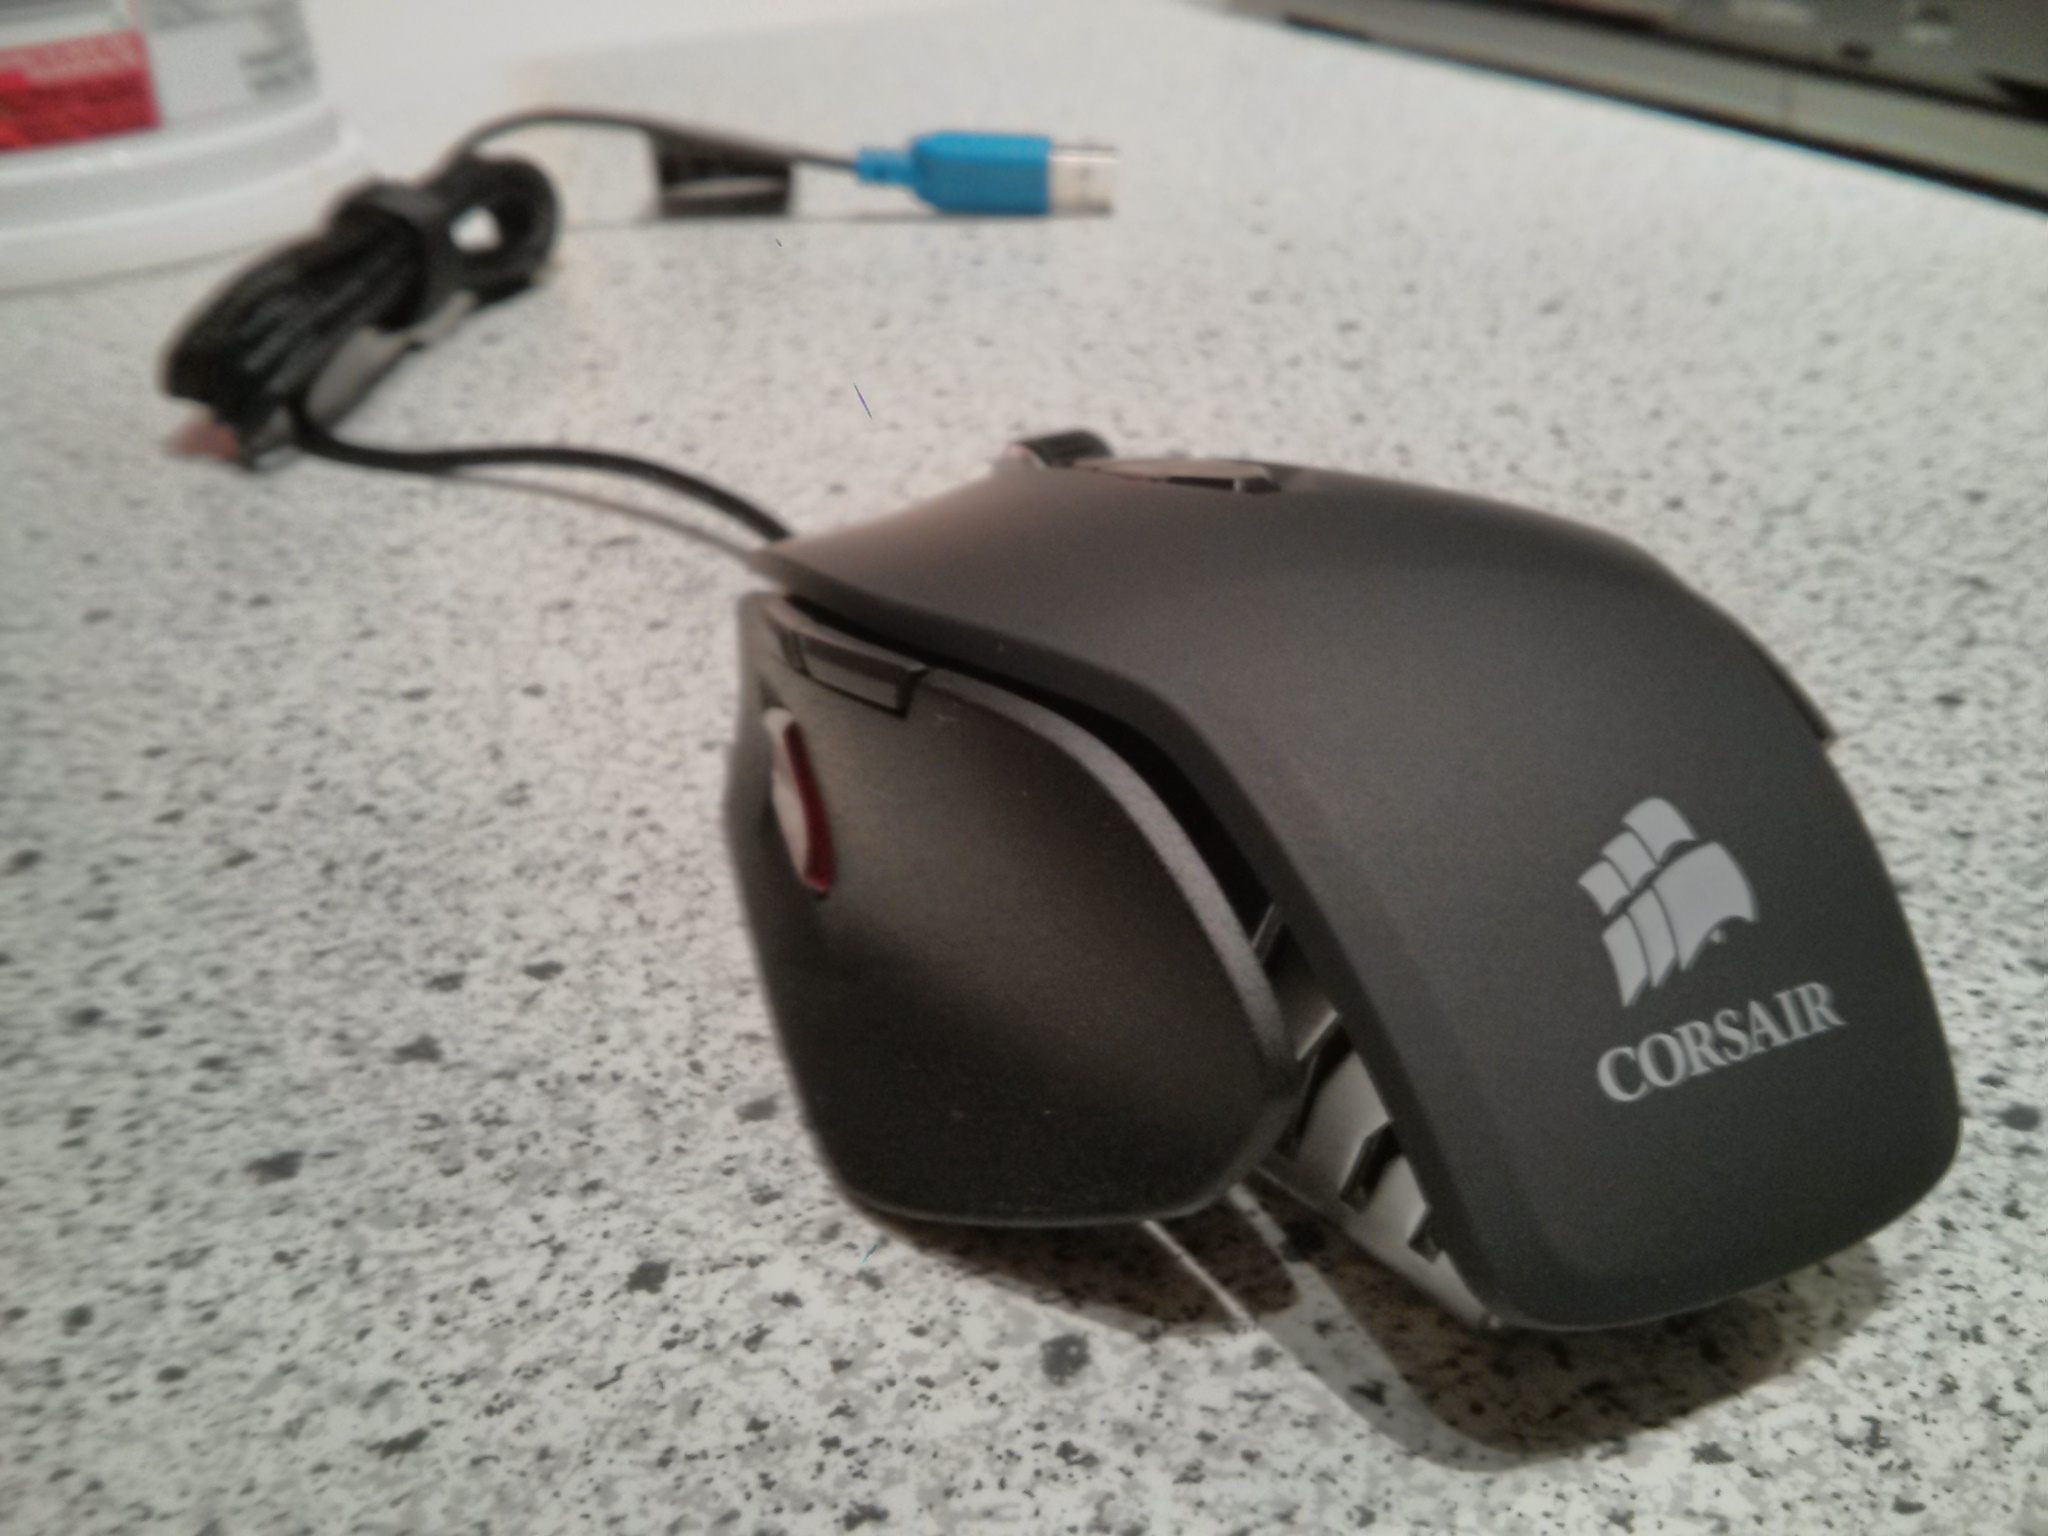 The Corsair M65 Laser FPS Gaming mouse